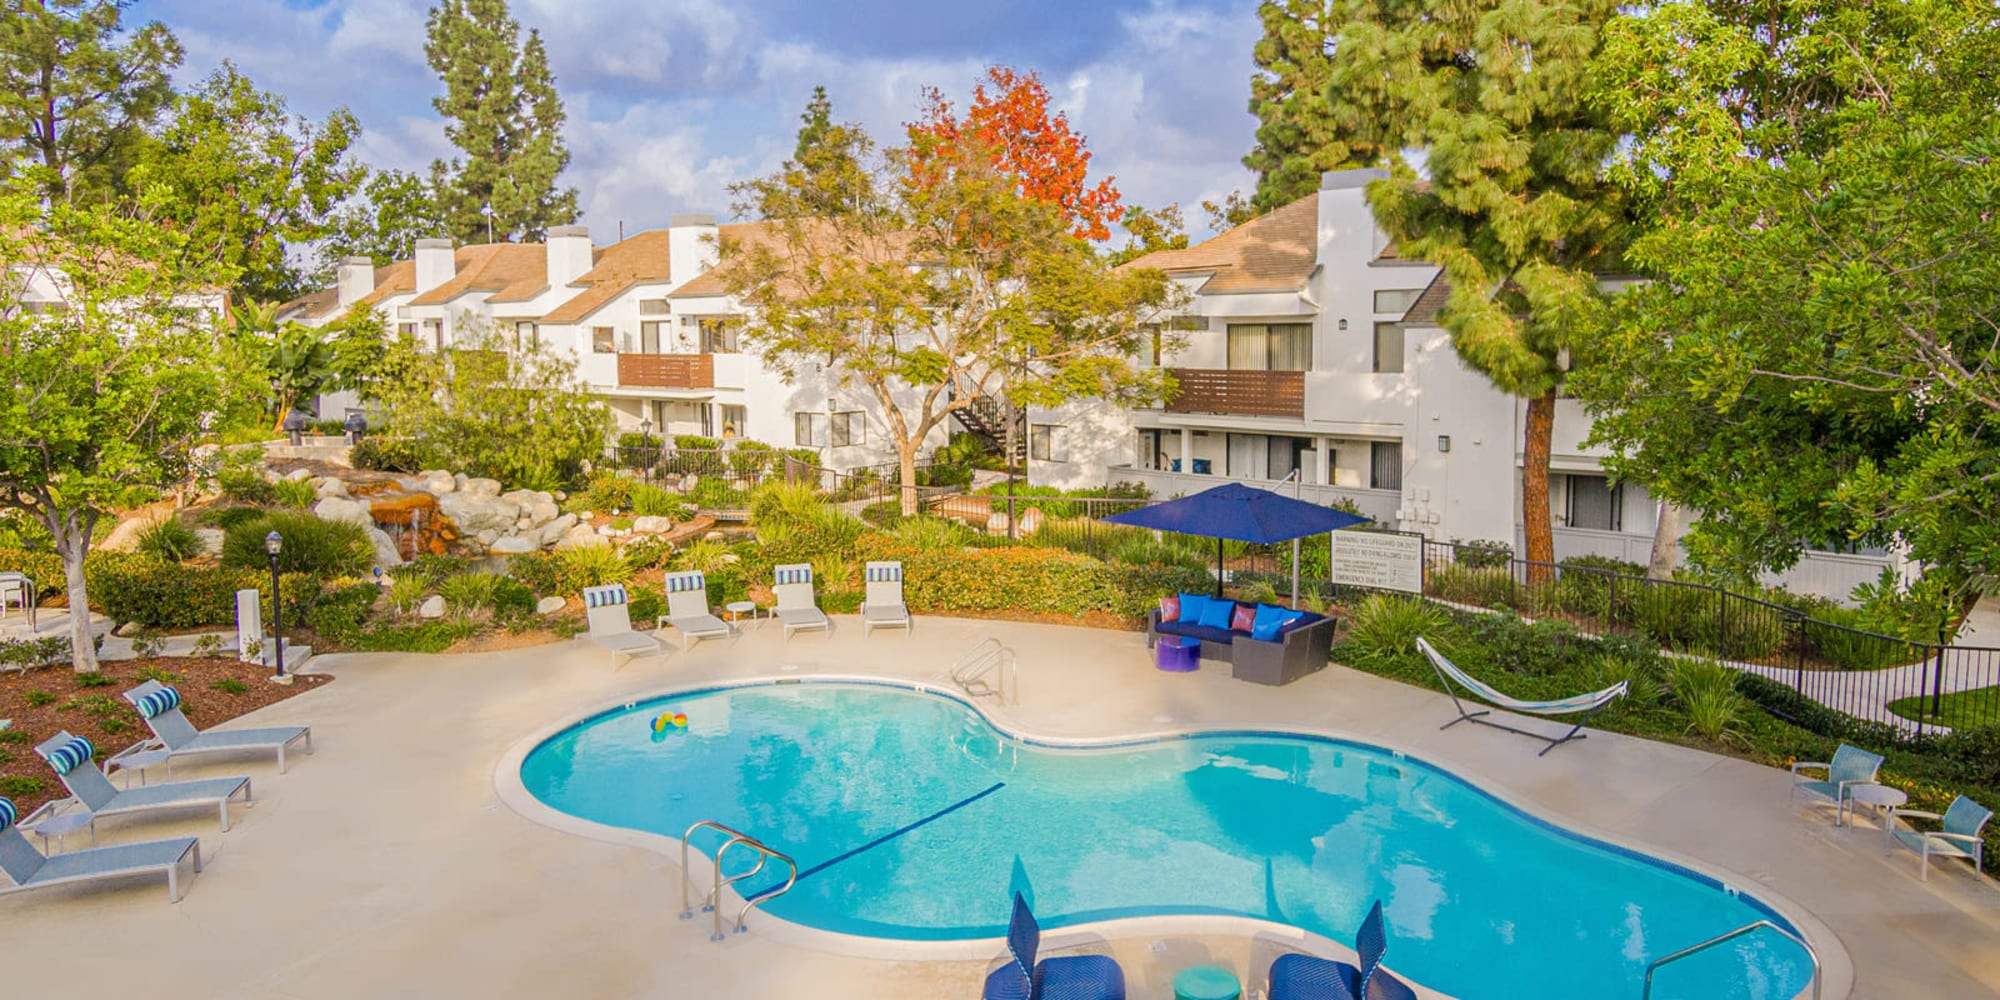 Early fall afternoon with leaves beginning to change color at the swimming pool area at Sendero Huntington Beach in Huntington Beach, California